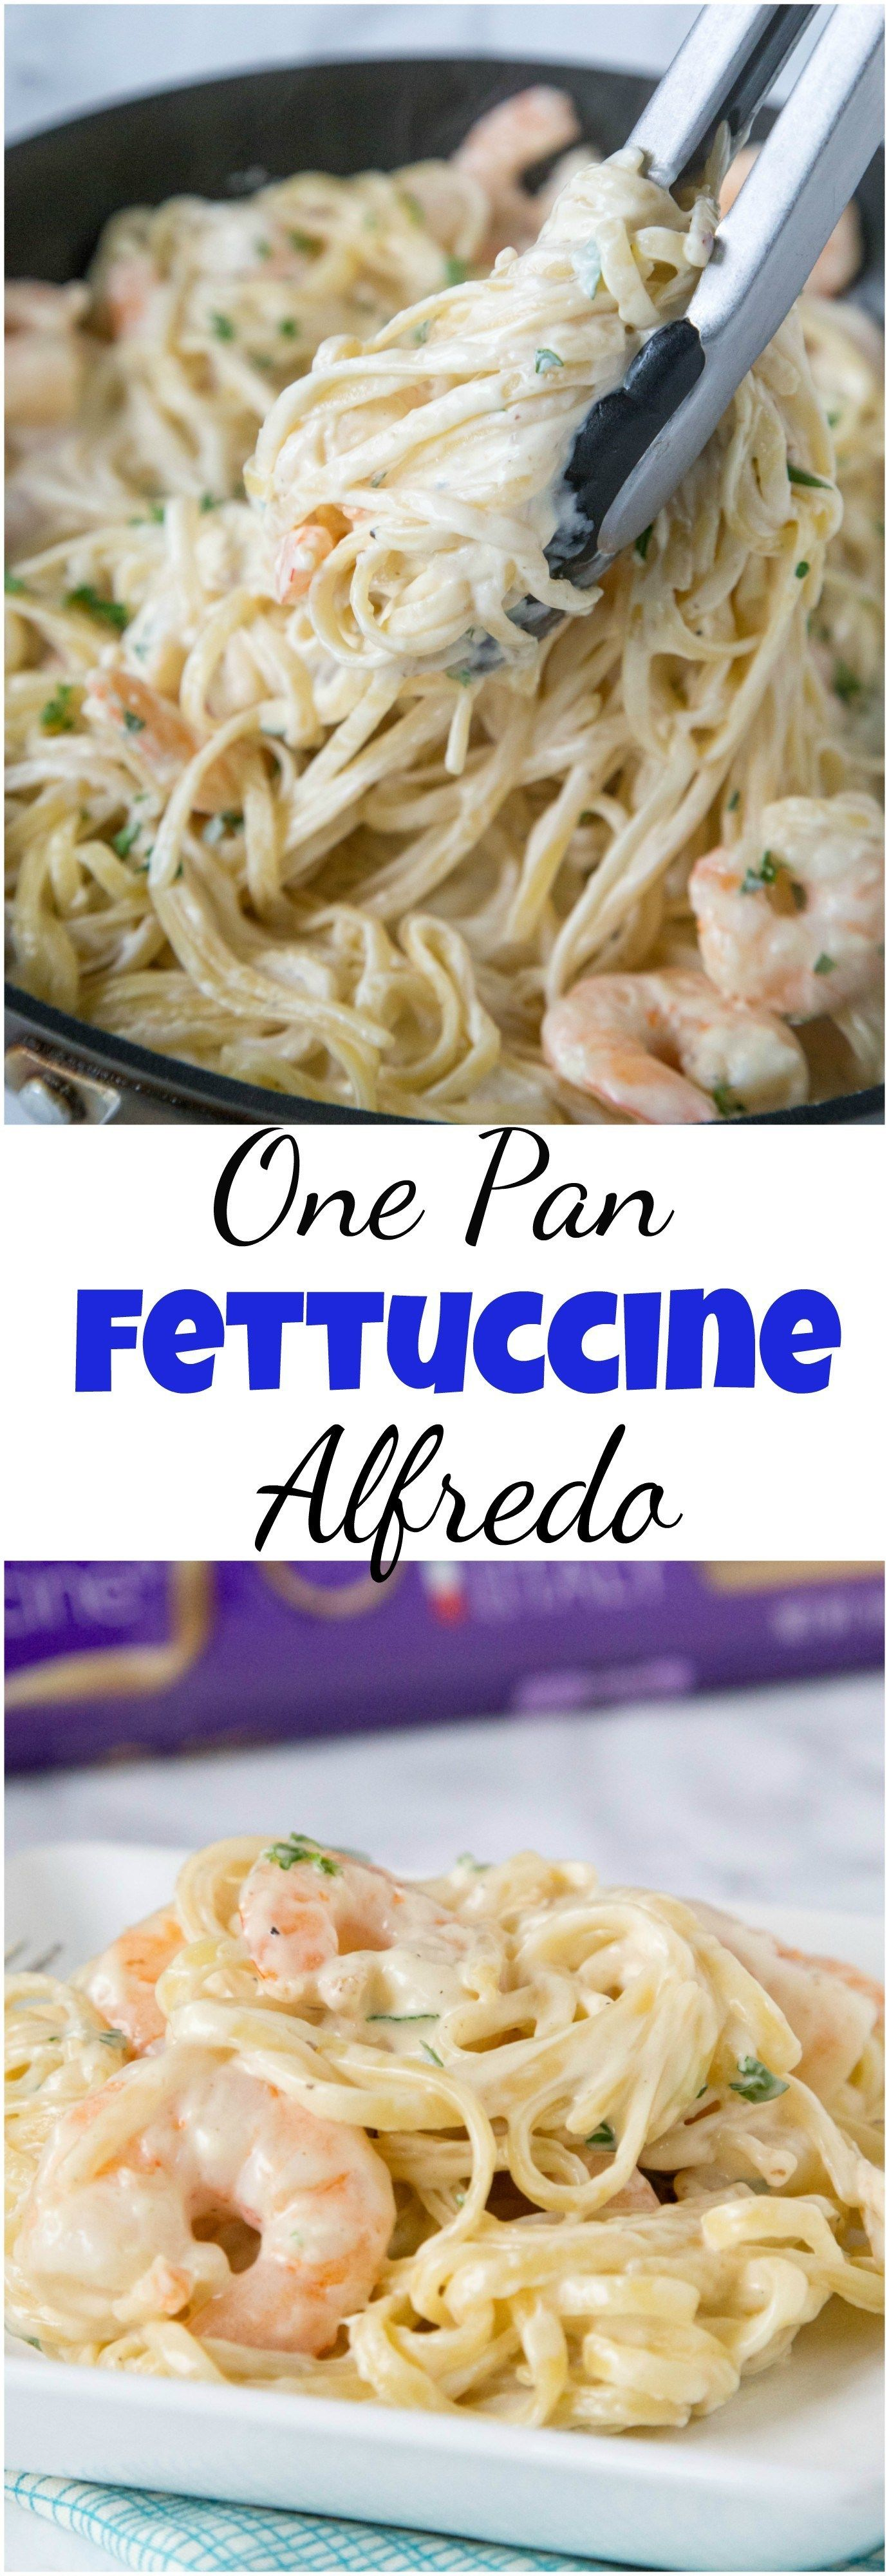 One Pan Fettuccine Alfredo with Shrimp - Dinners, Dishes, and Desserts